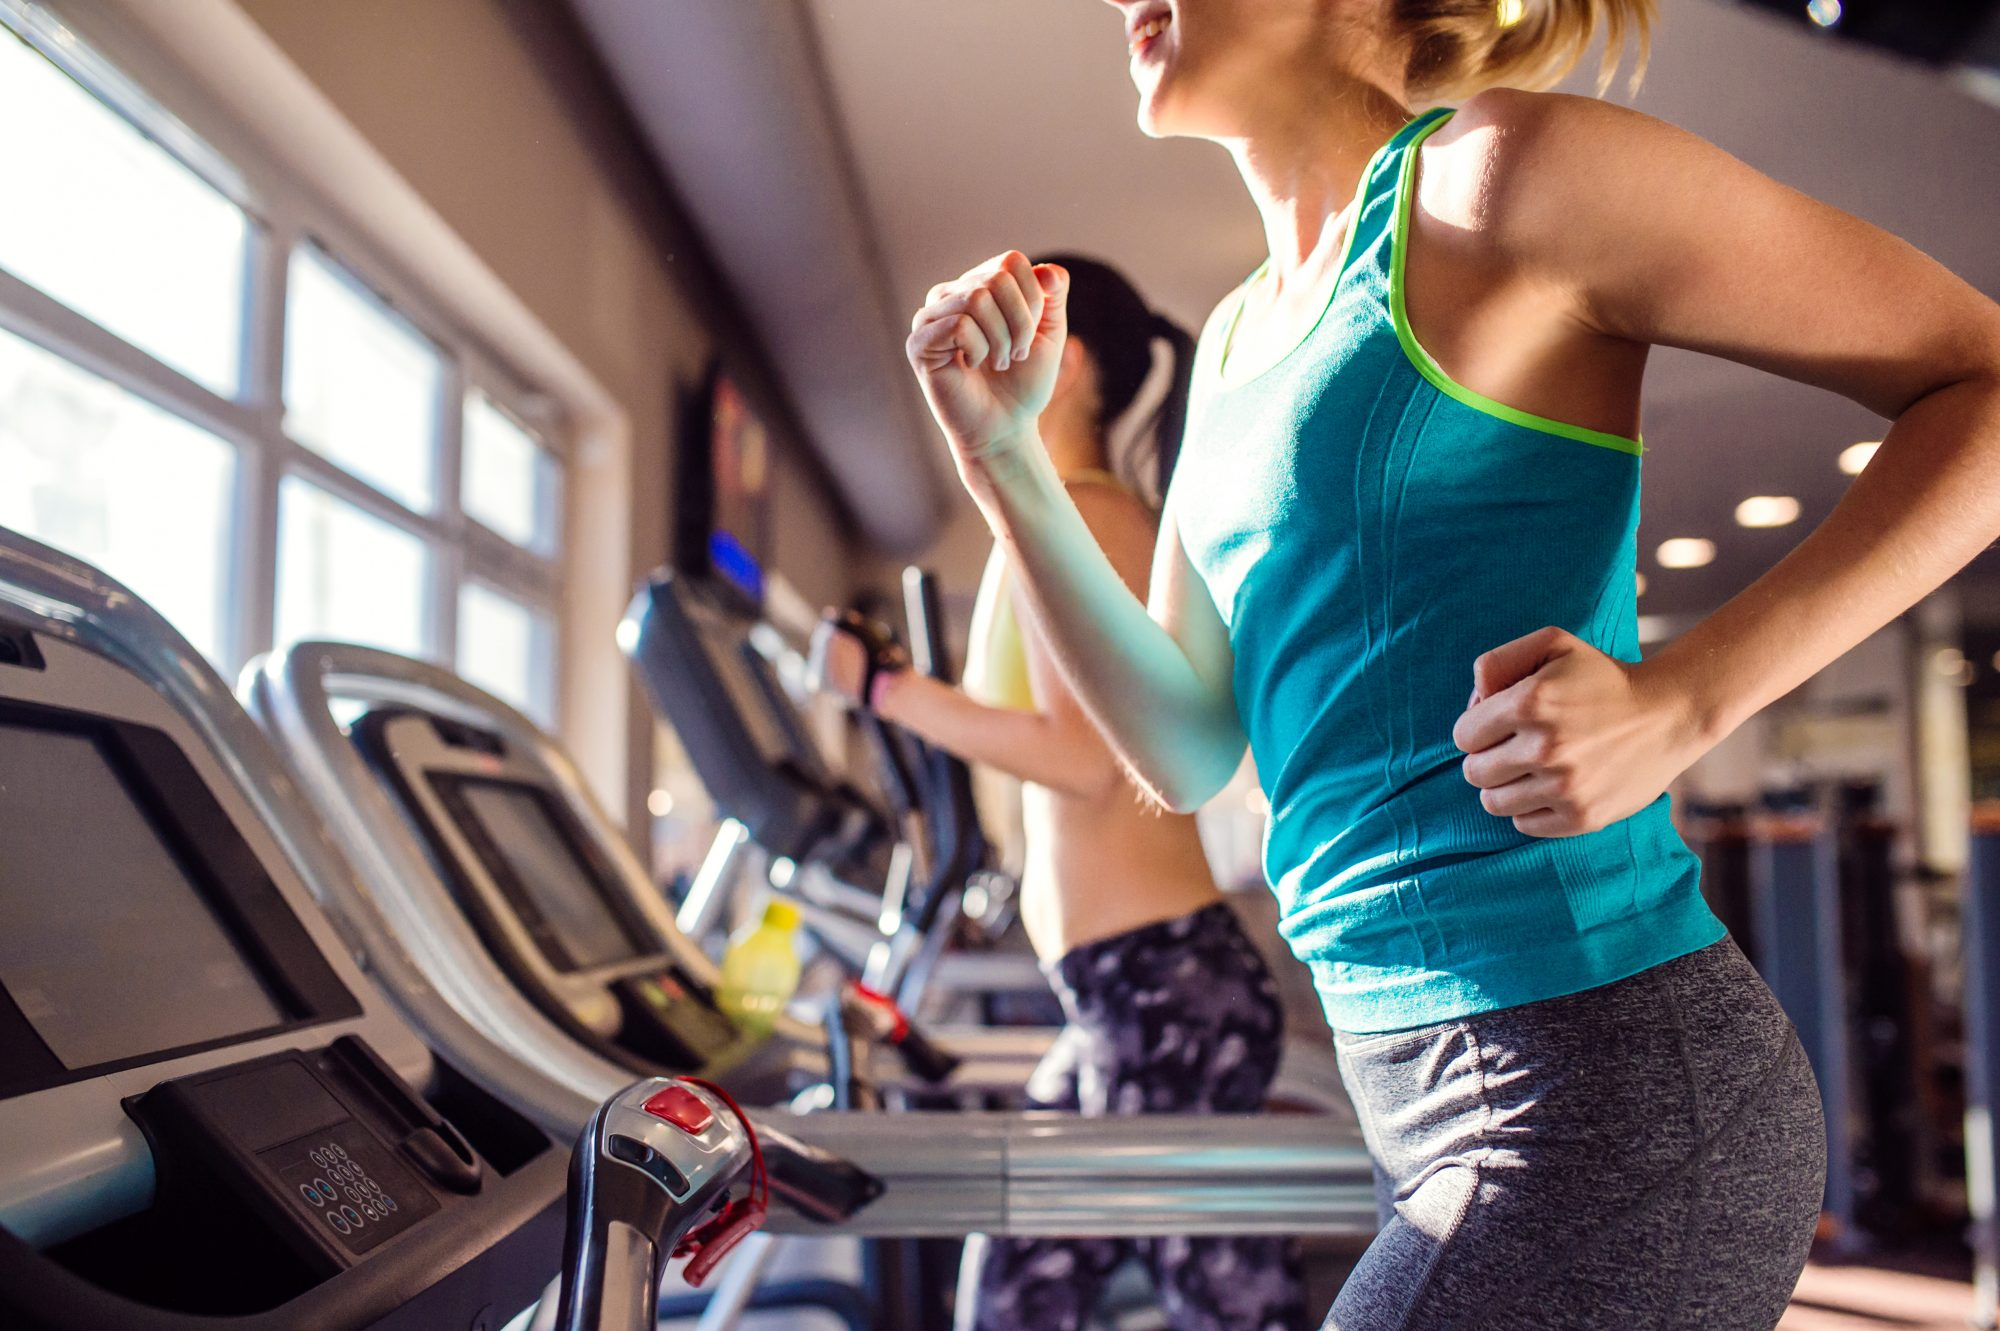 10 Mistakes That Will Make Everyone Hate You at the Gym